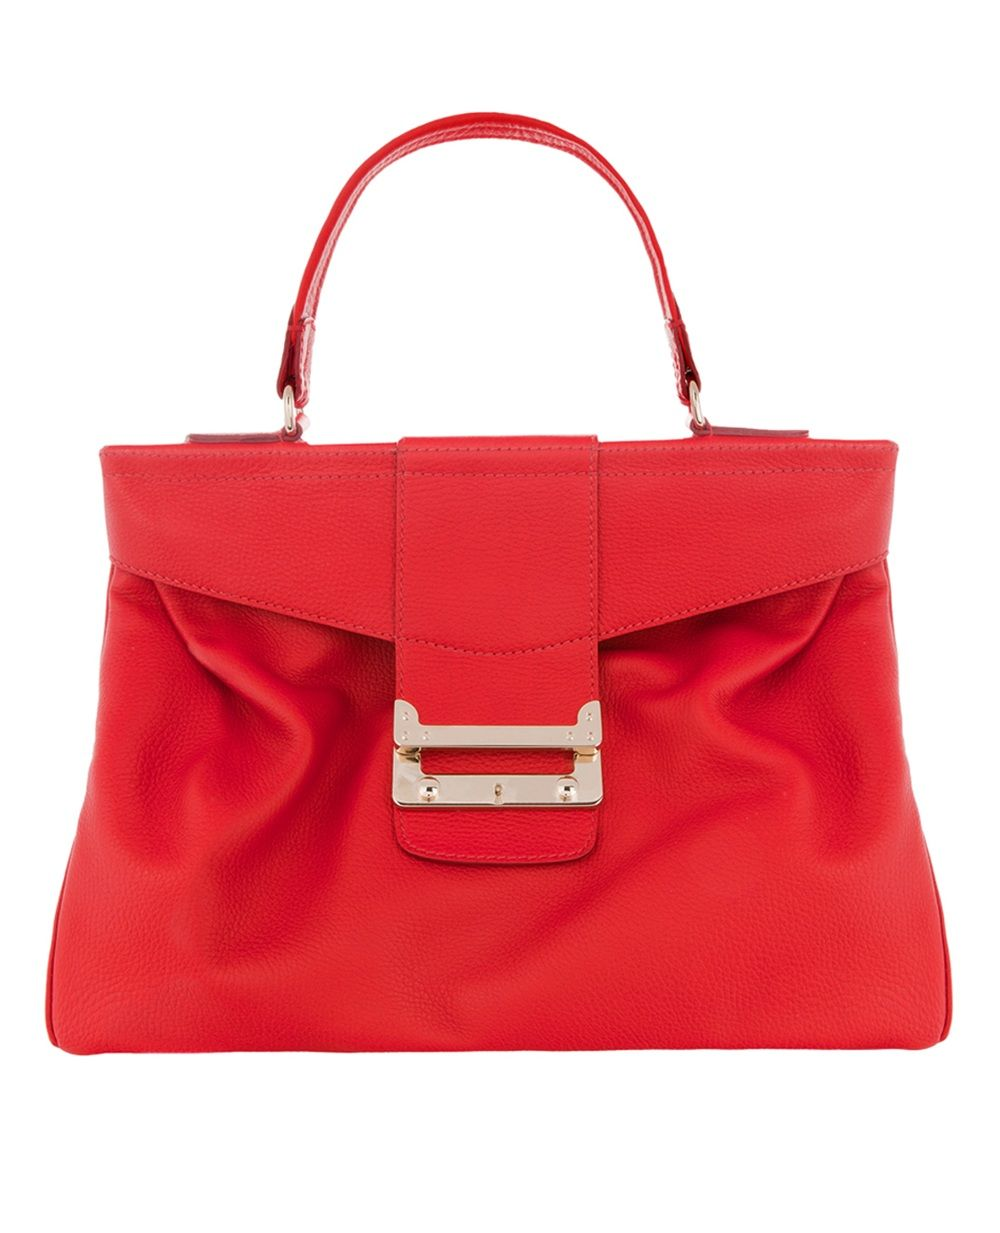 f9631b657d7 VBH Leather Tote | Every Woman Needs a Red Handbag | Bags, Luxury ...